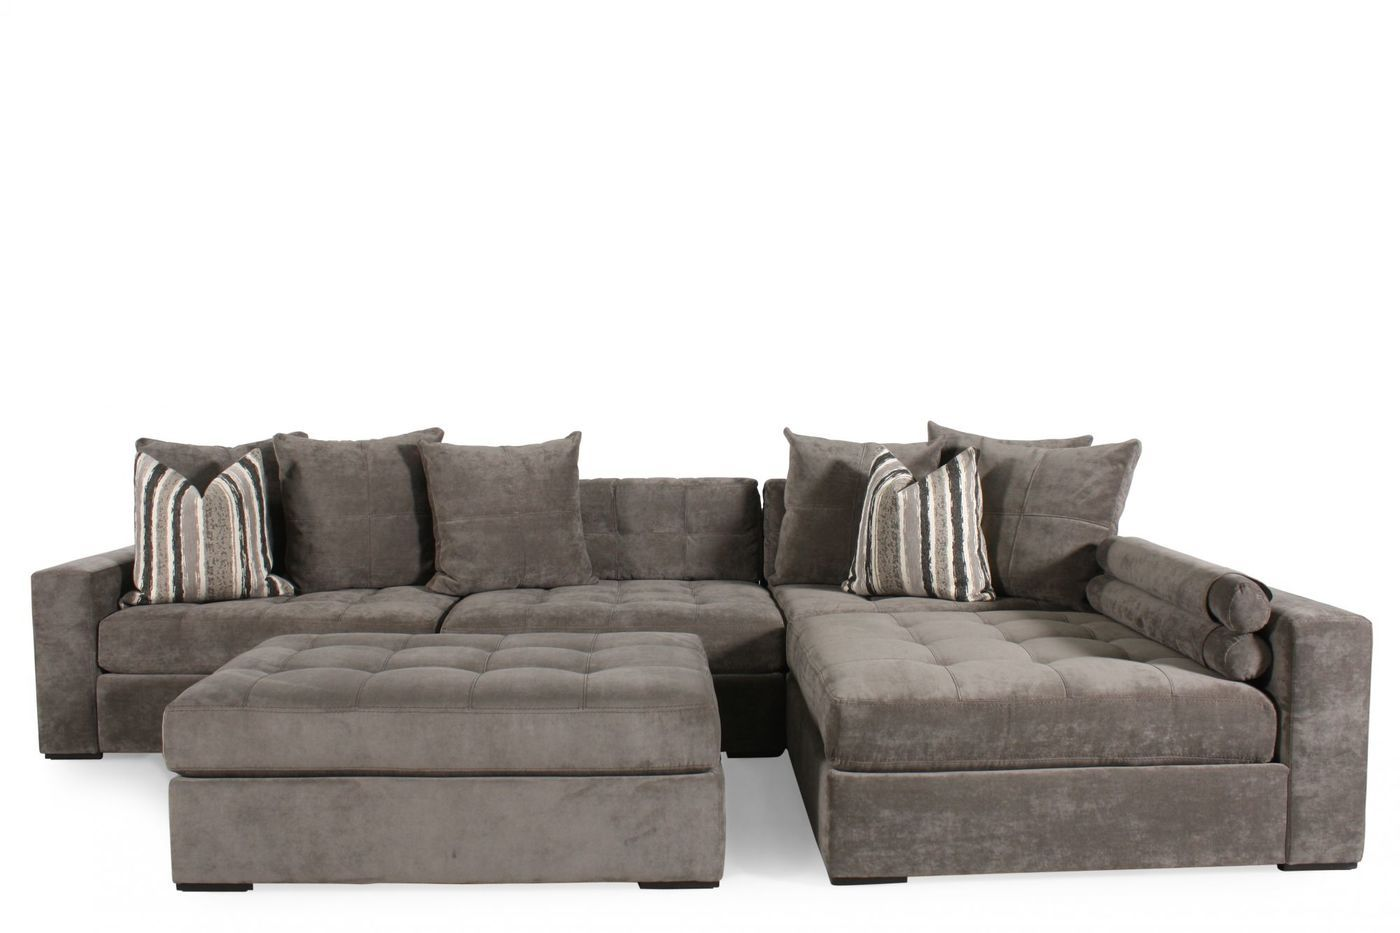 Jonathan Louis Noah Gray Sectional | Mathis Brothers Furniture  sc 1 st  Pinterest : mathis brothers sectional sofas - Sectionals, Sofas & Couches